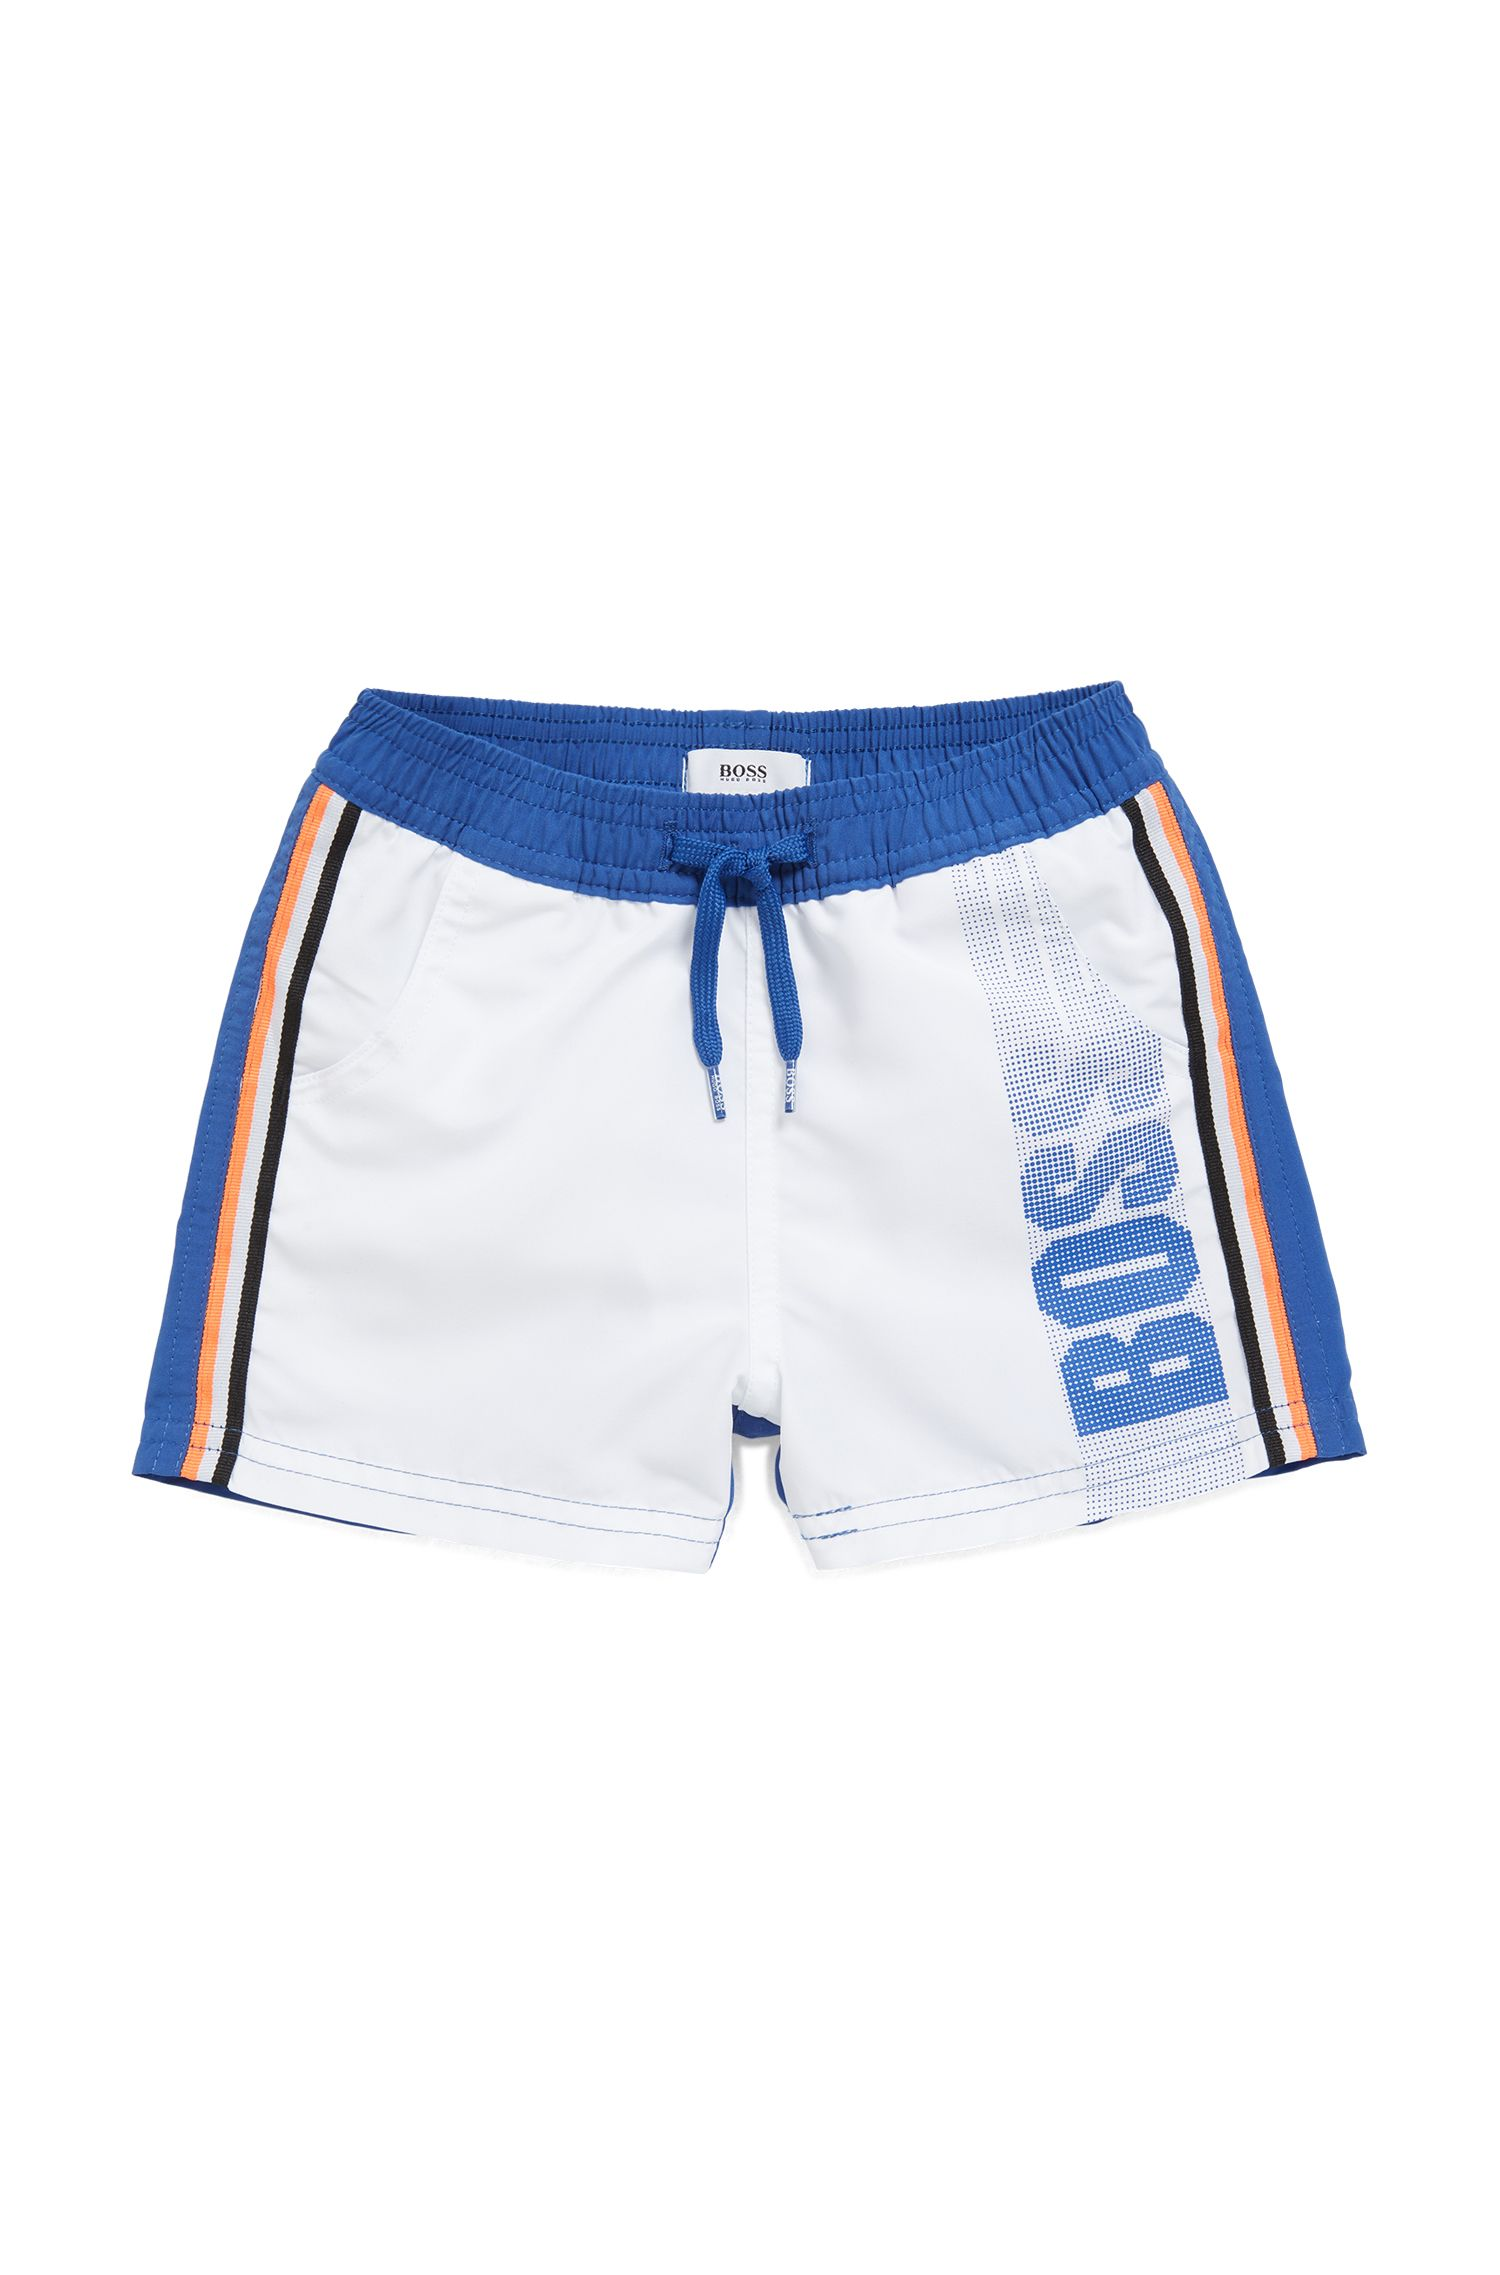 Kids' swim shorts in quick-dry technical fabric